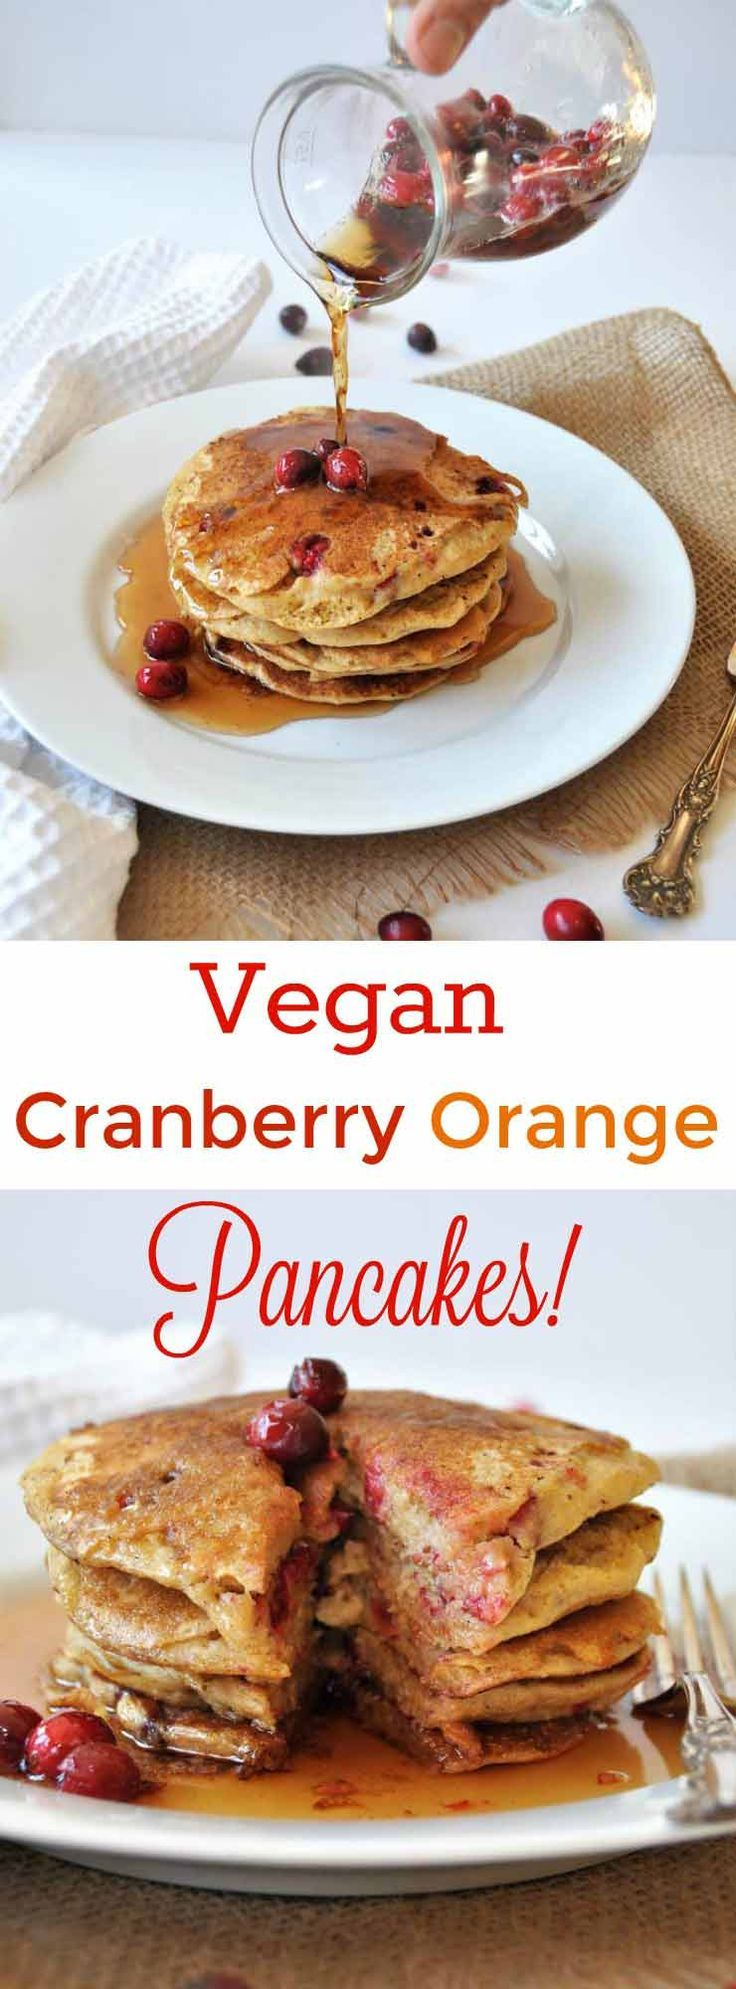 Vegan Cranberry Orange Pancakes for breakfast! Dairy and egg-free ...